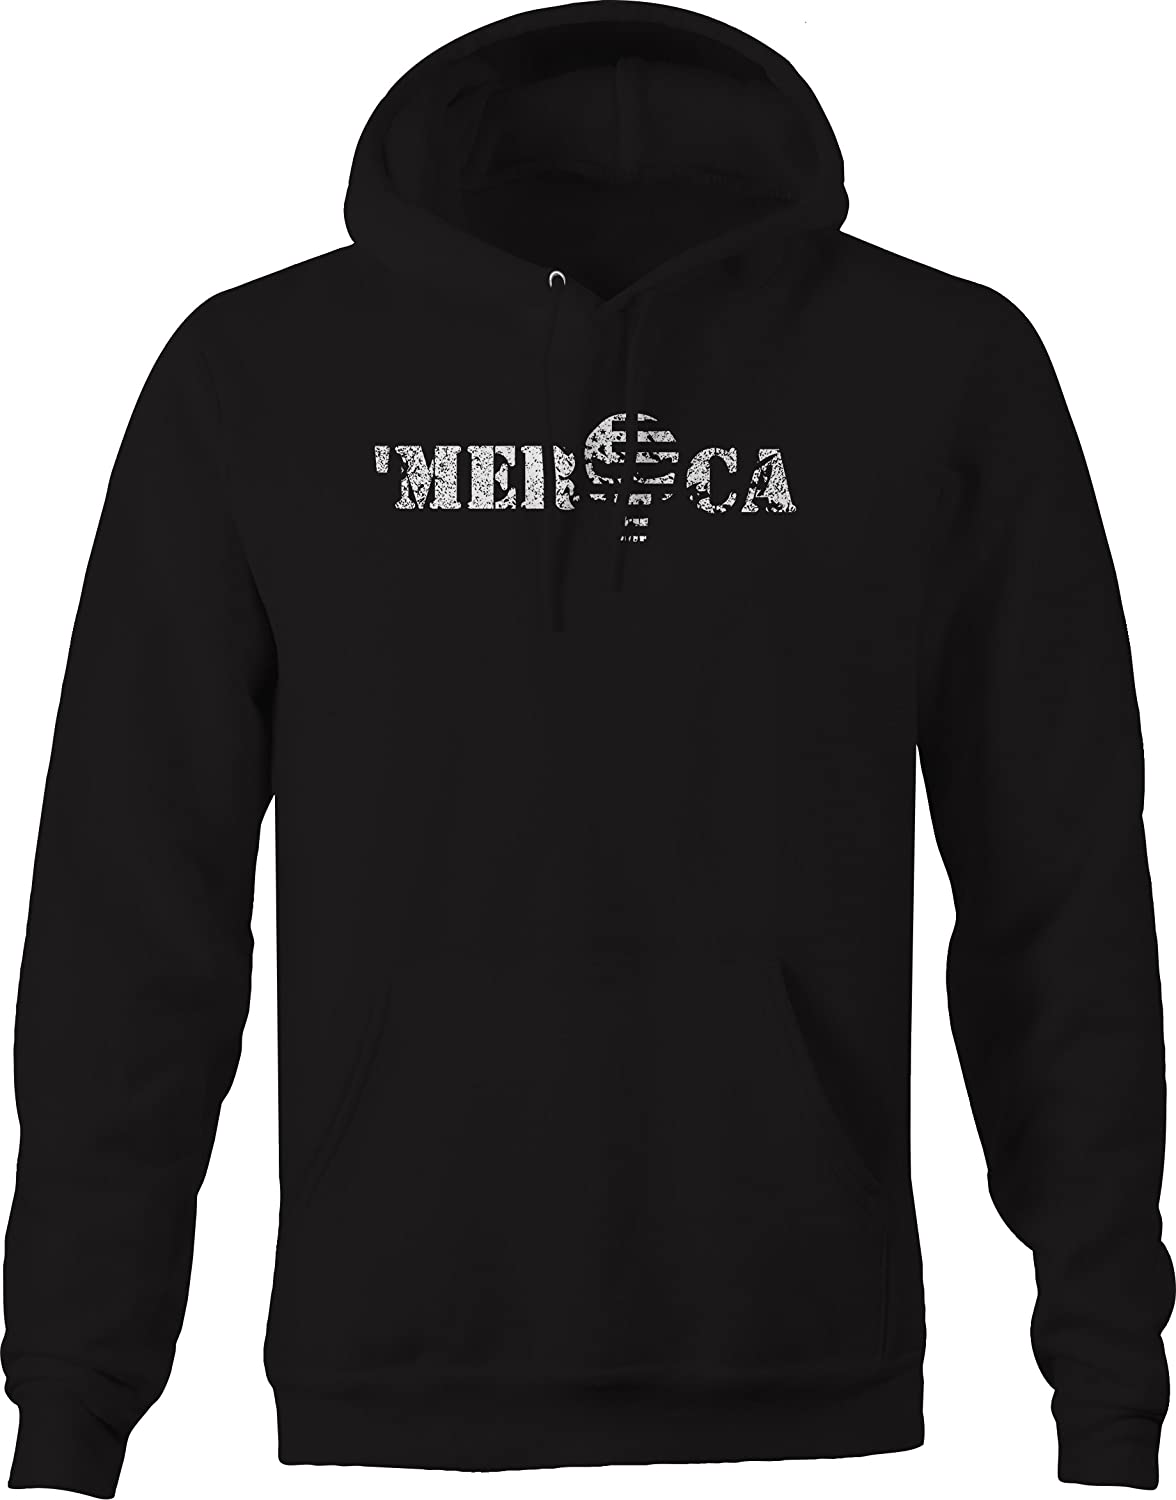 Distressed Merica Patriot Skull America Military Hoodies for Men